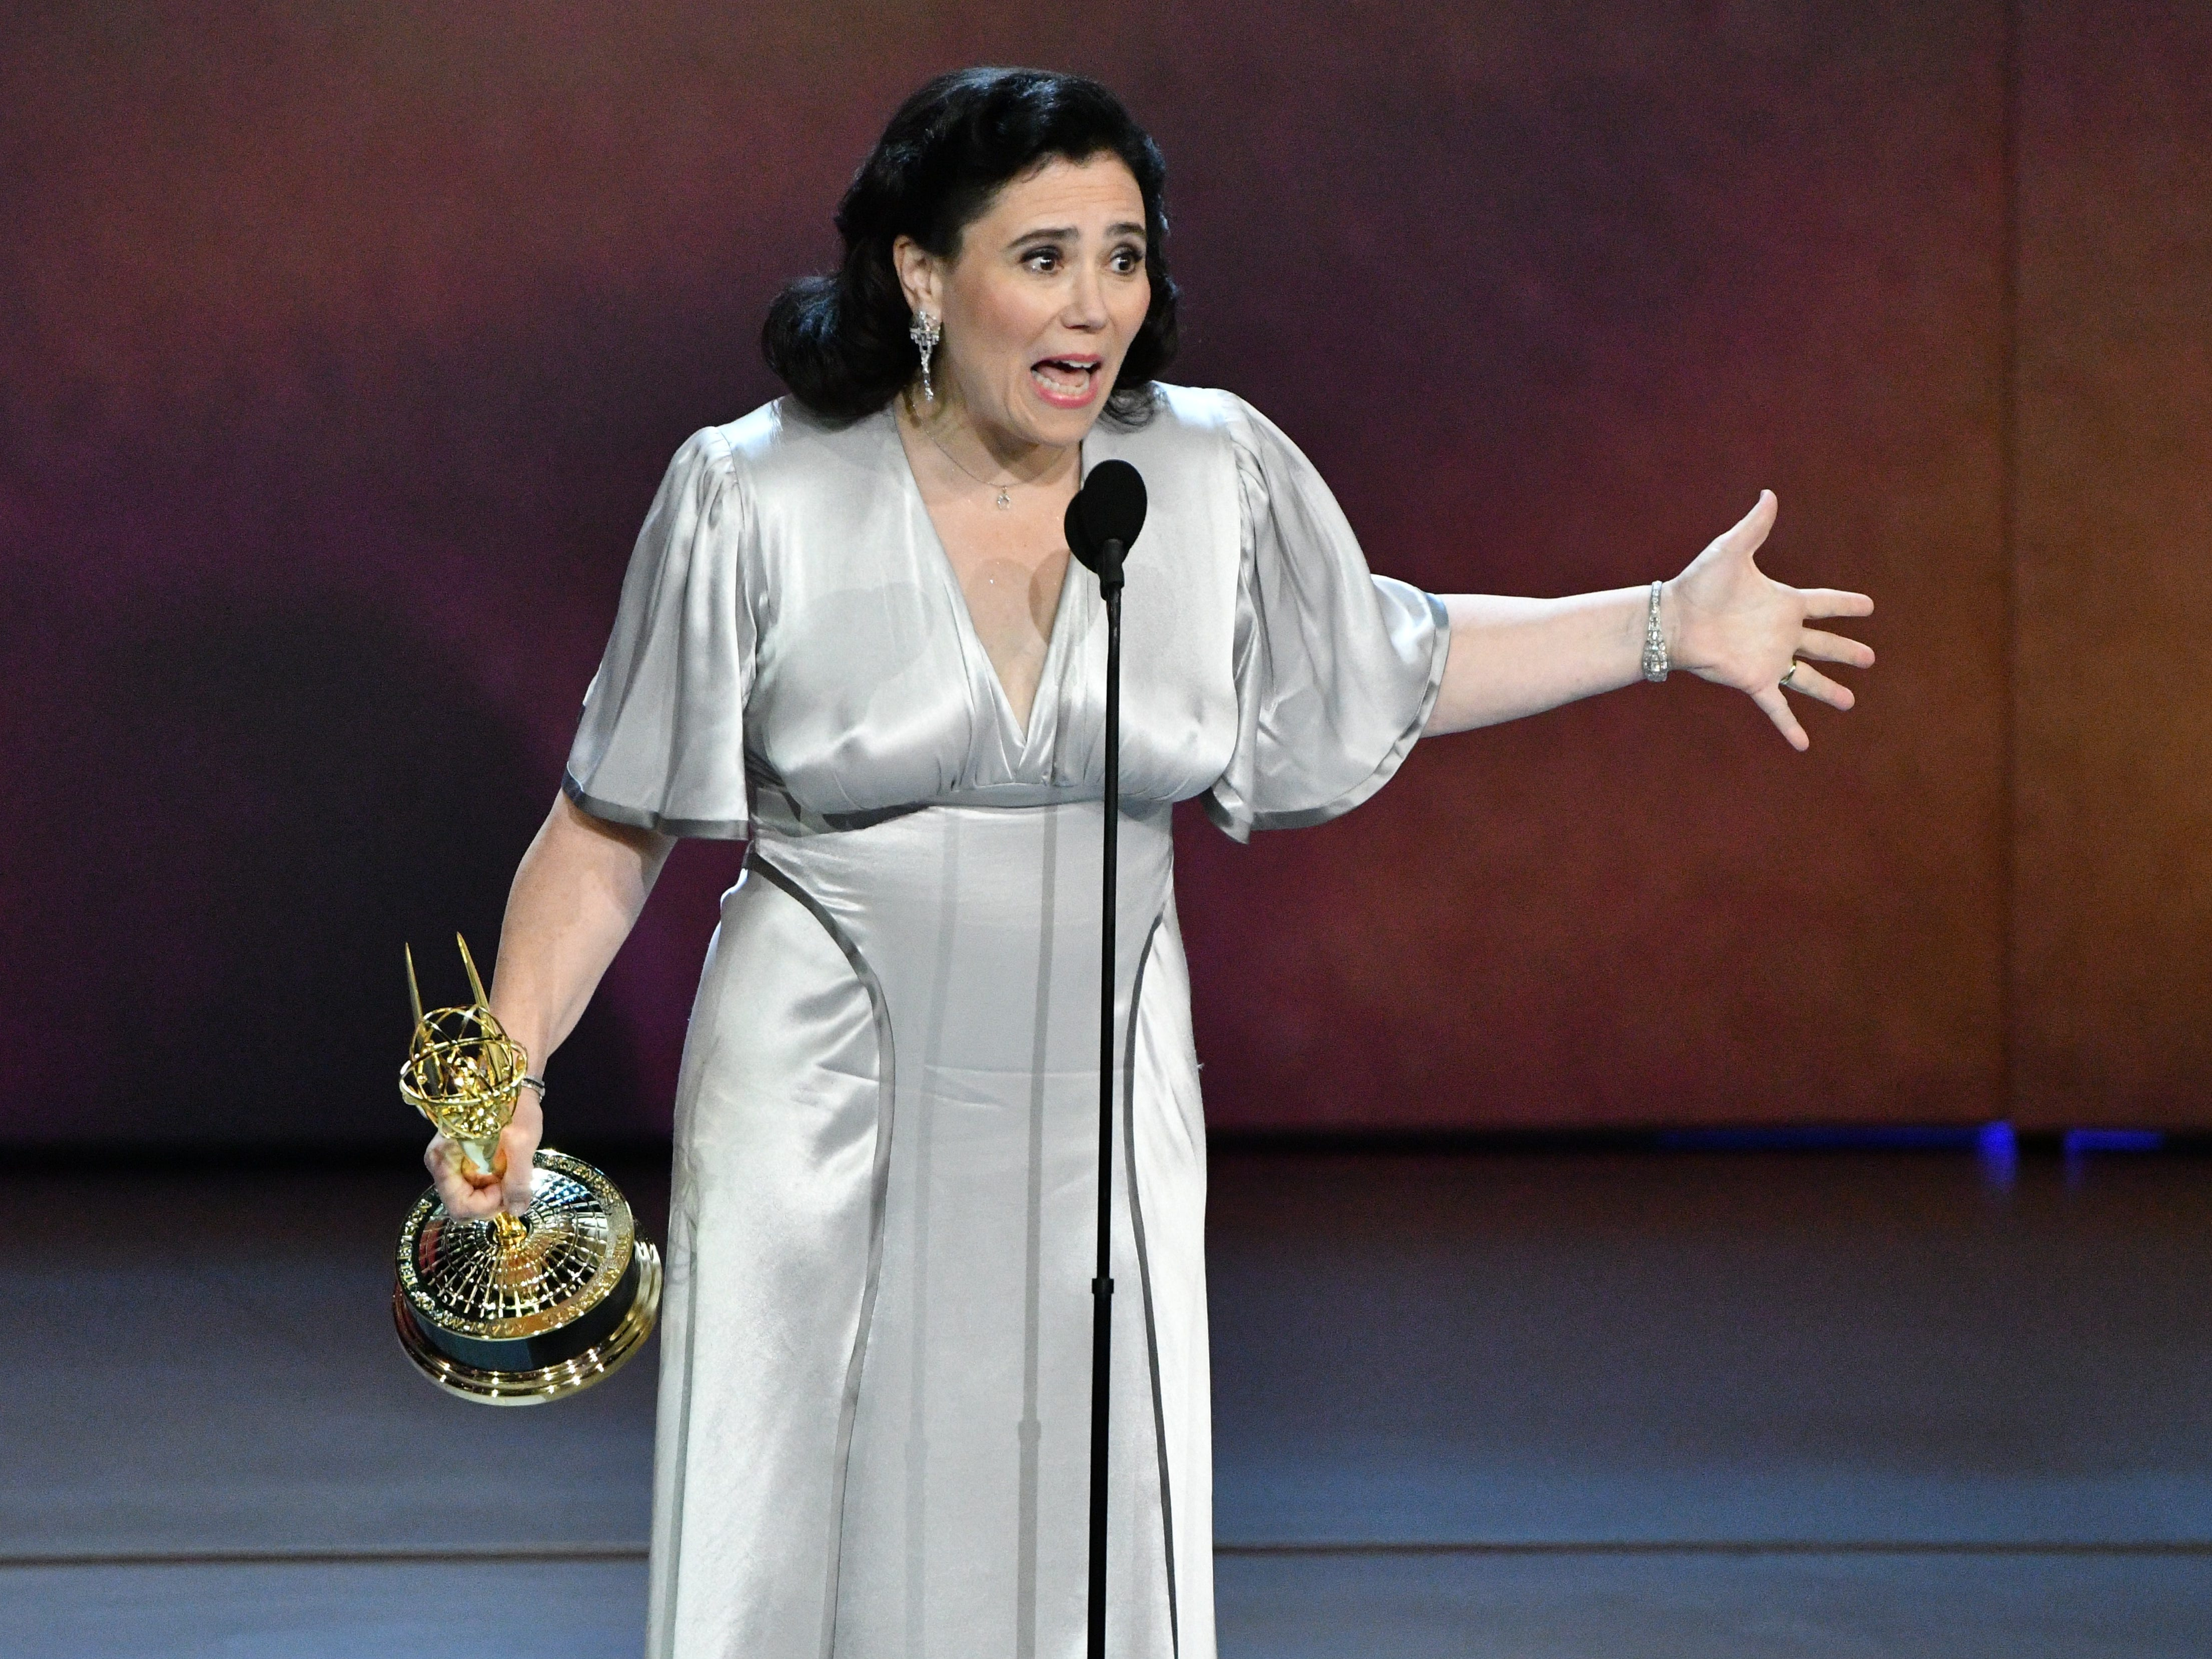 """Alex Borstein accepts the award for supporting actress in a comedy series for her role in """"The Marvelous Mrs. Maisel"""" on Amazon Prime Video."""